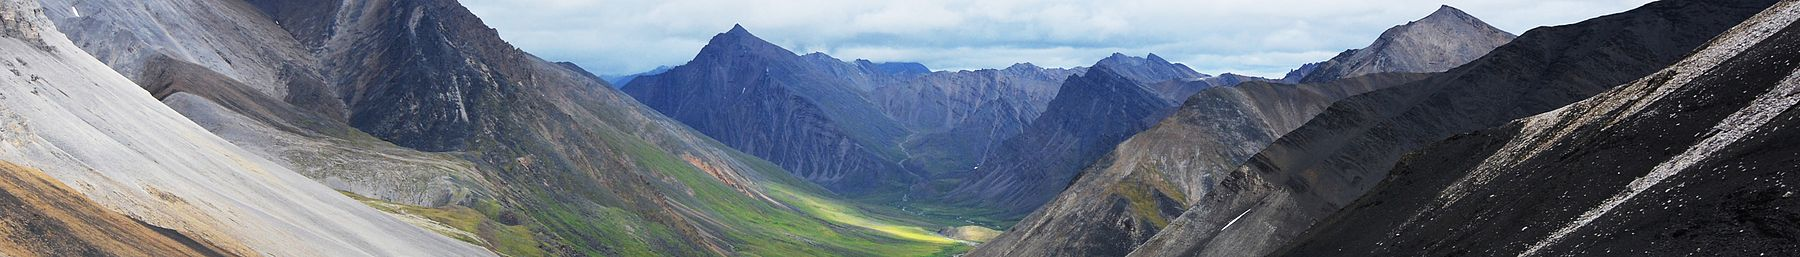 Hiking in Gates of the Arctic National Park banner.jpg